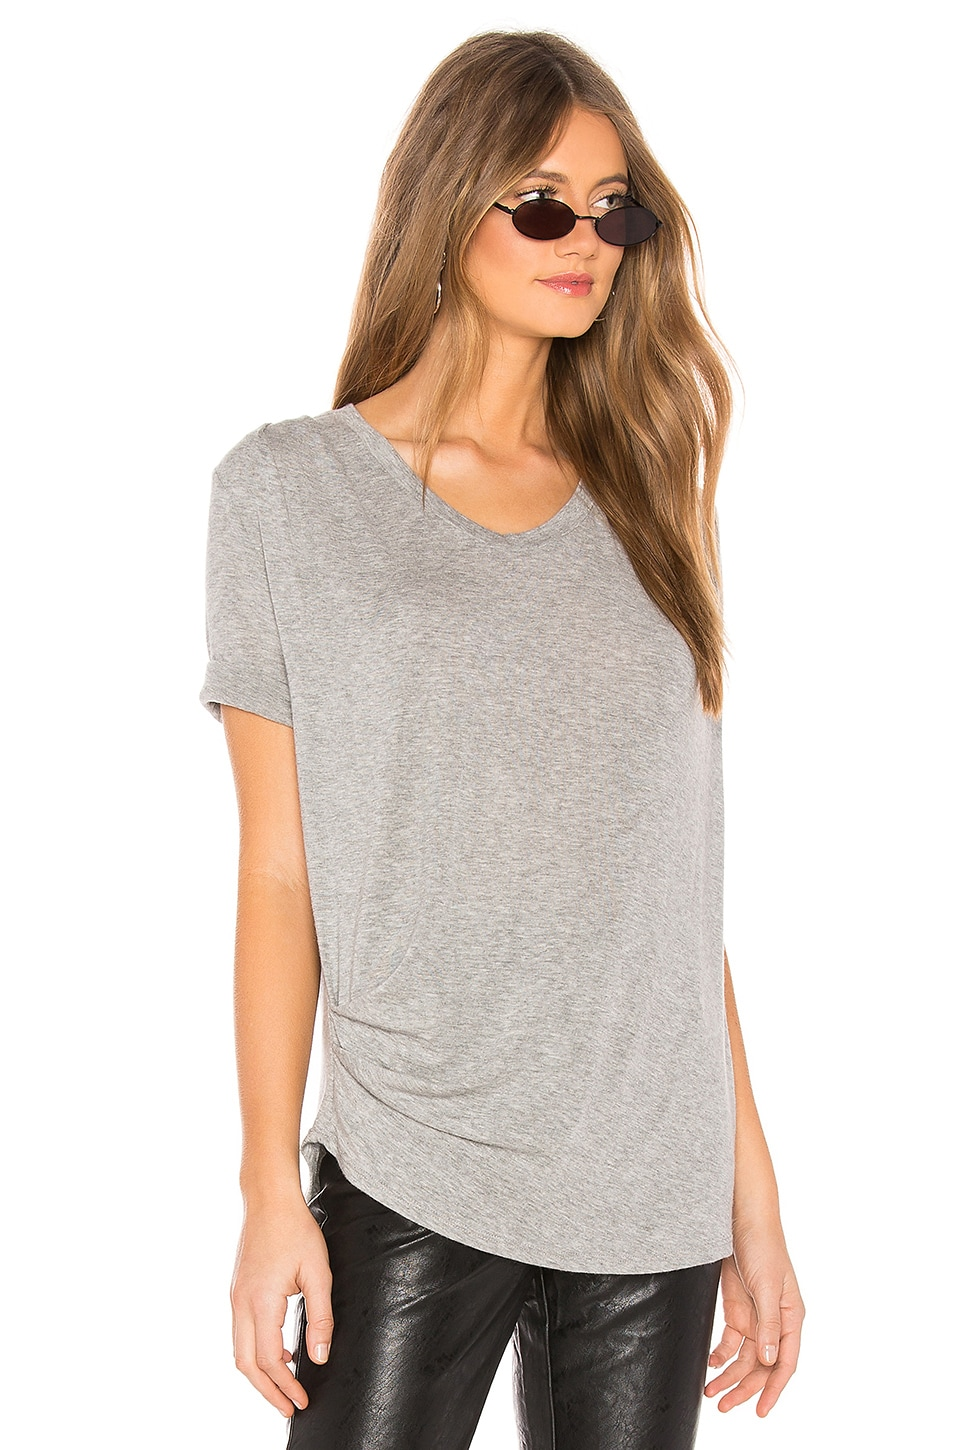 LA Made Marigot Draped Tee in Heather Grey